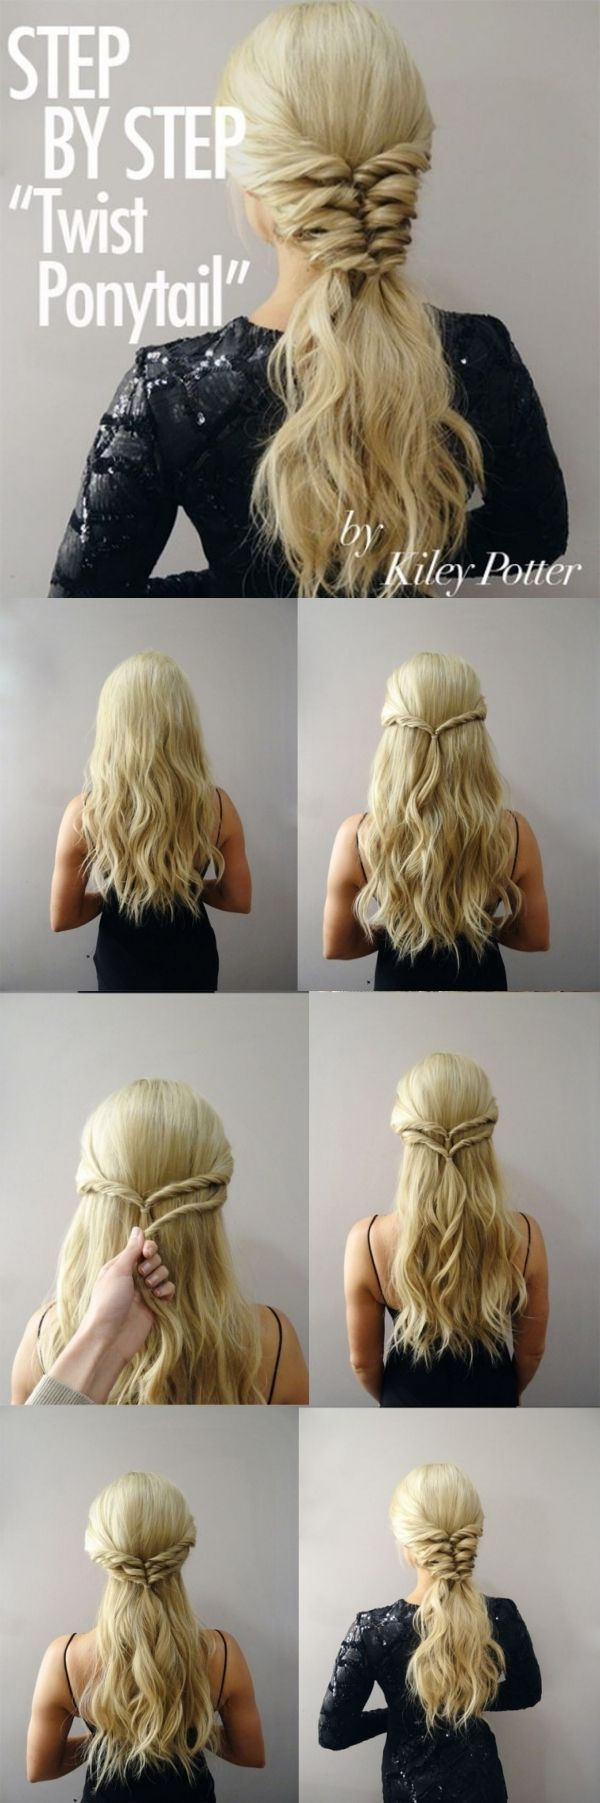 best hairstyles images on pinterest cute hairstyles hair